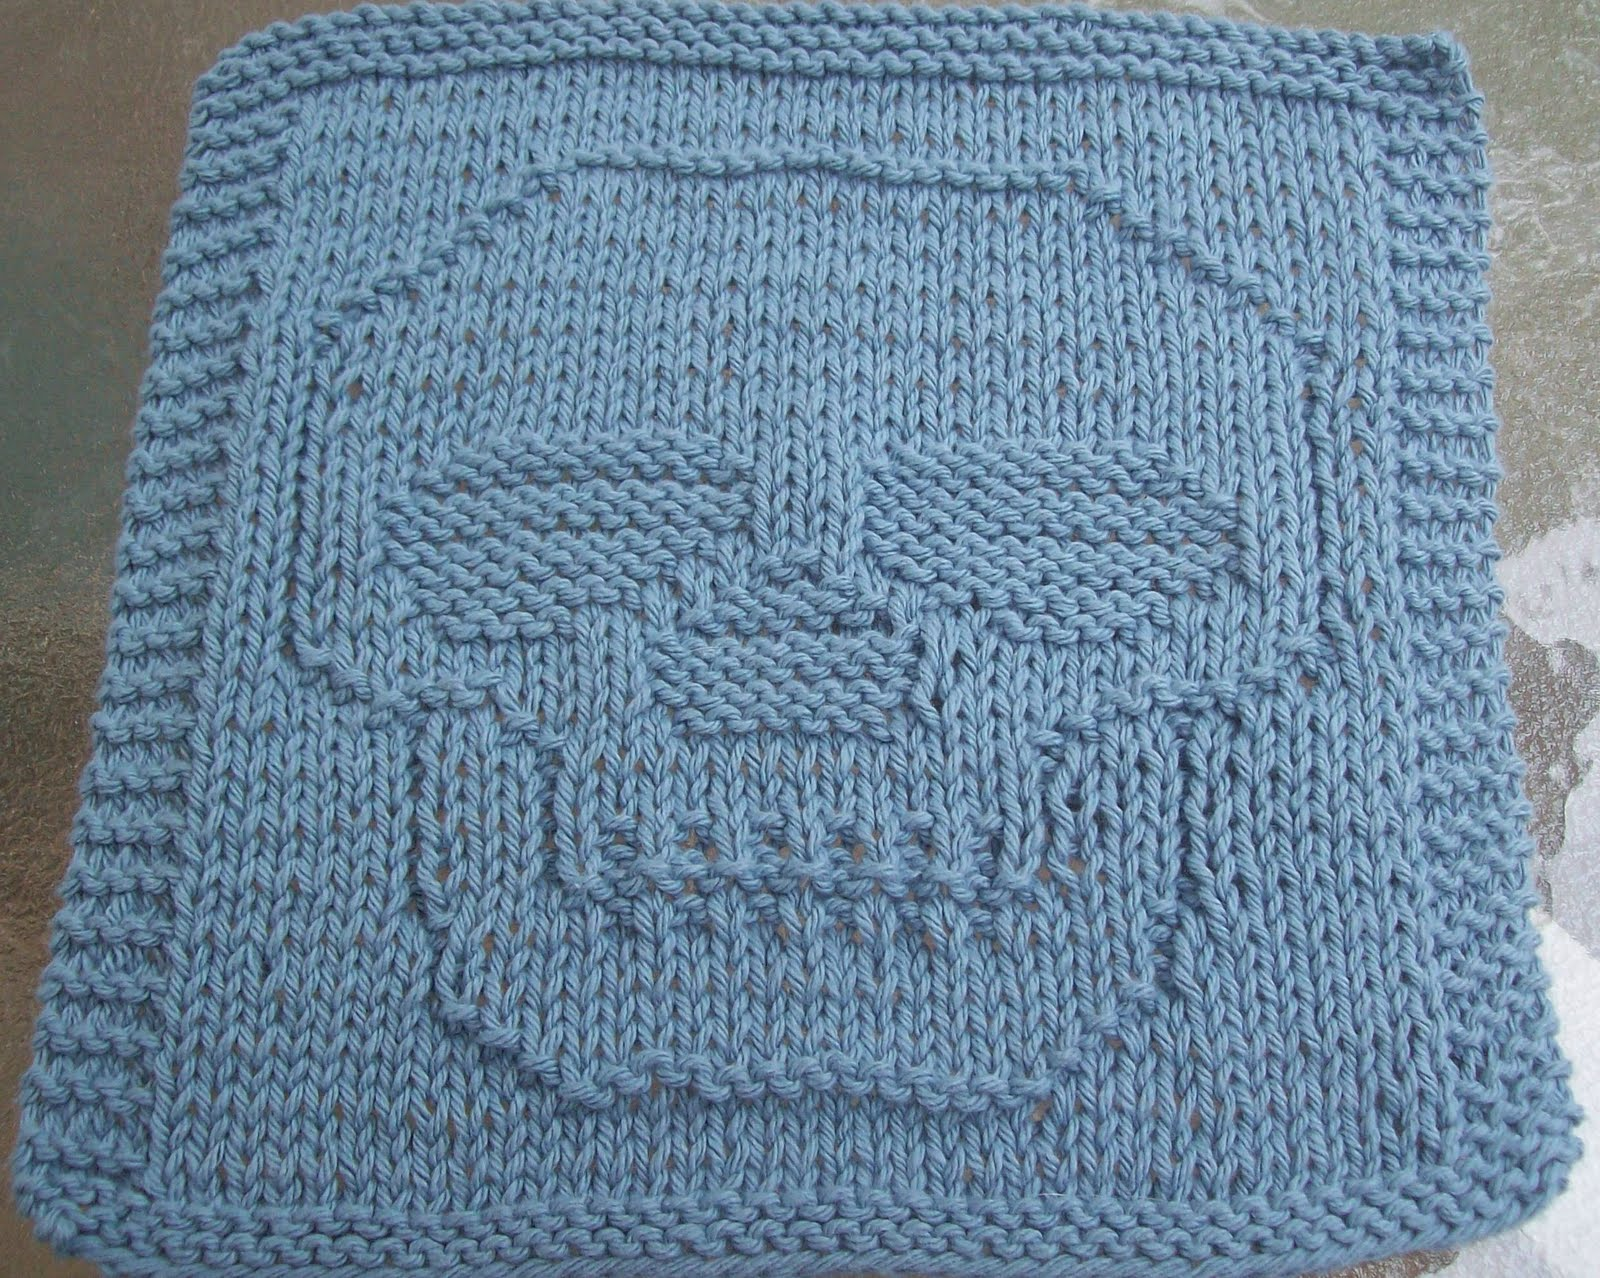 Pattern Knitted Dishcloth : DigKnitty Designs: Just a Skull Knit Dishcloth Pattern